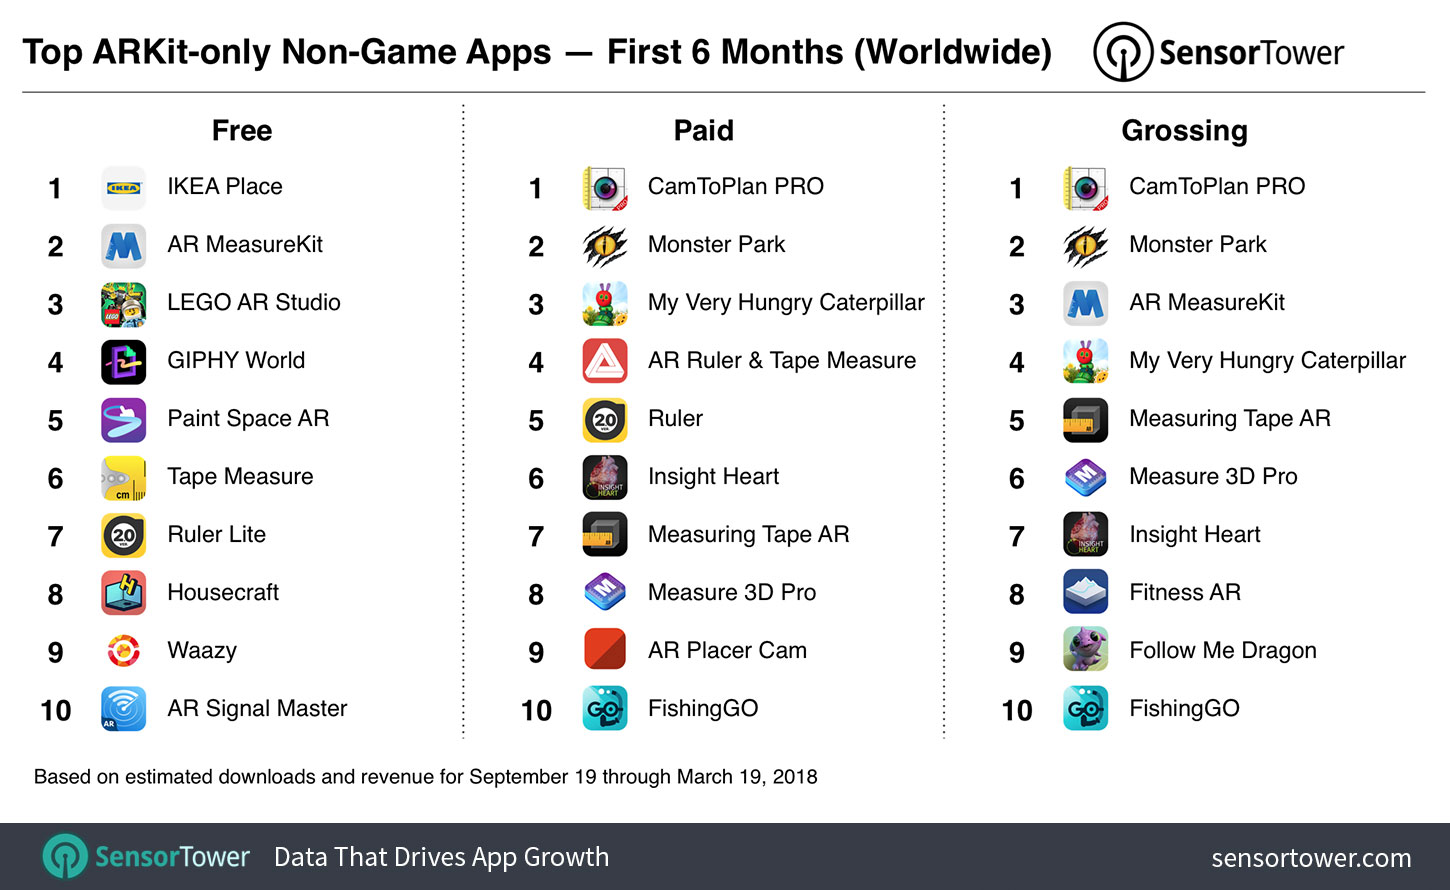 Ranking of top free, paid, and grossing ARKit non-game apps overall for September 19, 2017 to March 19, 2018